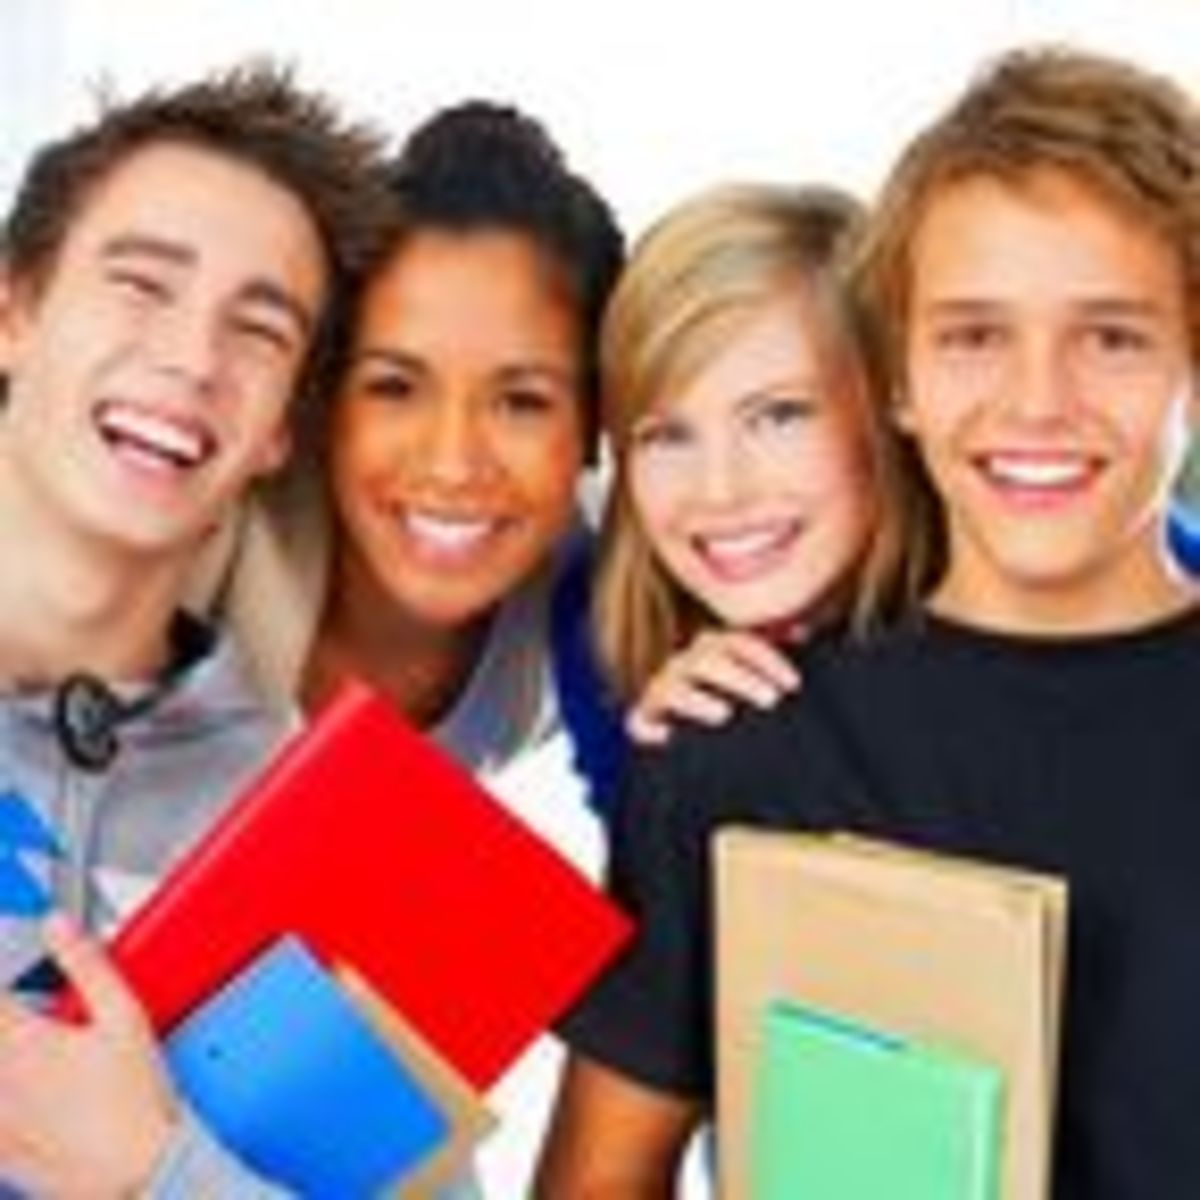 Sorry, not Dealing with teen issues teens